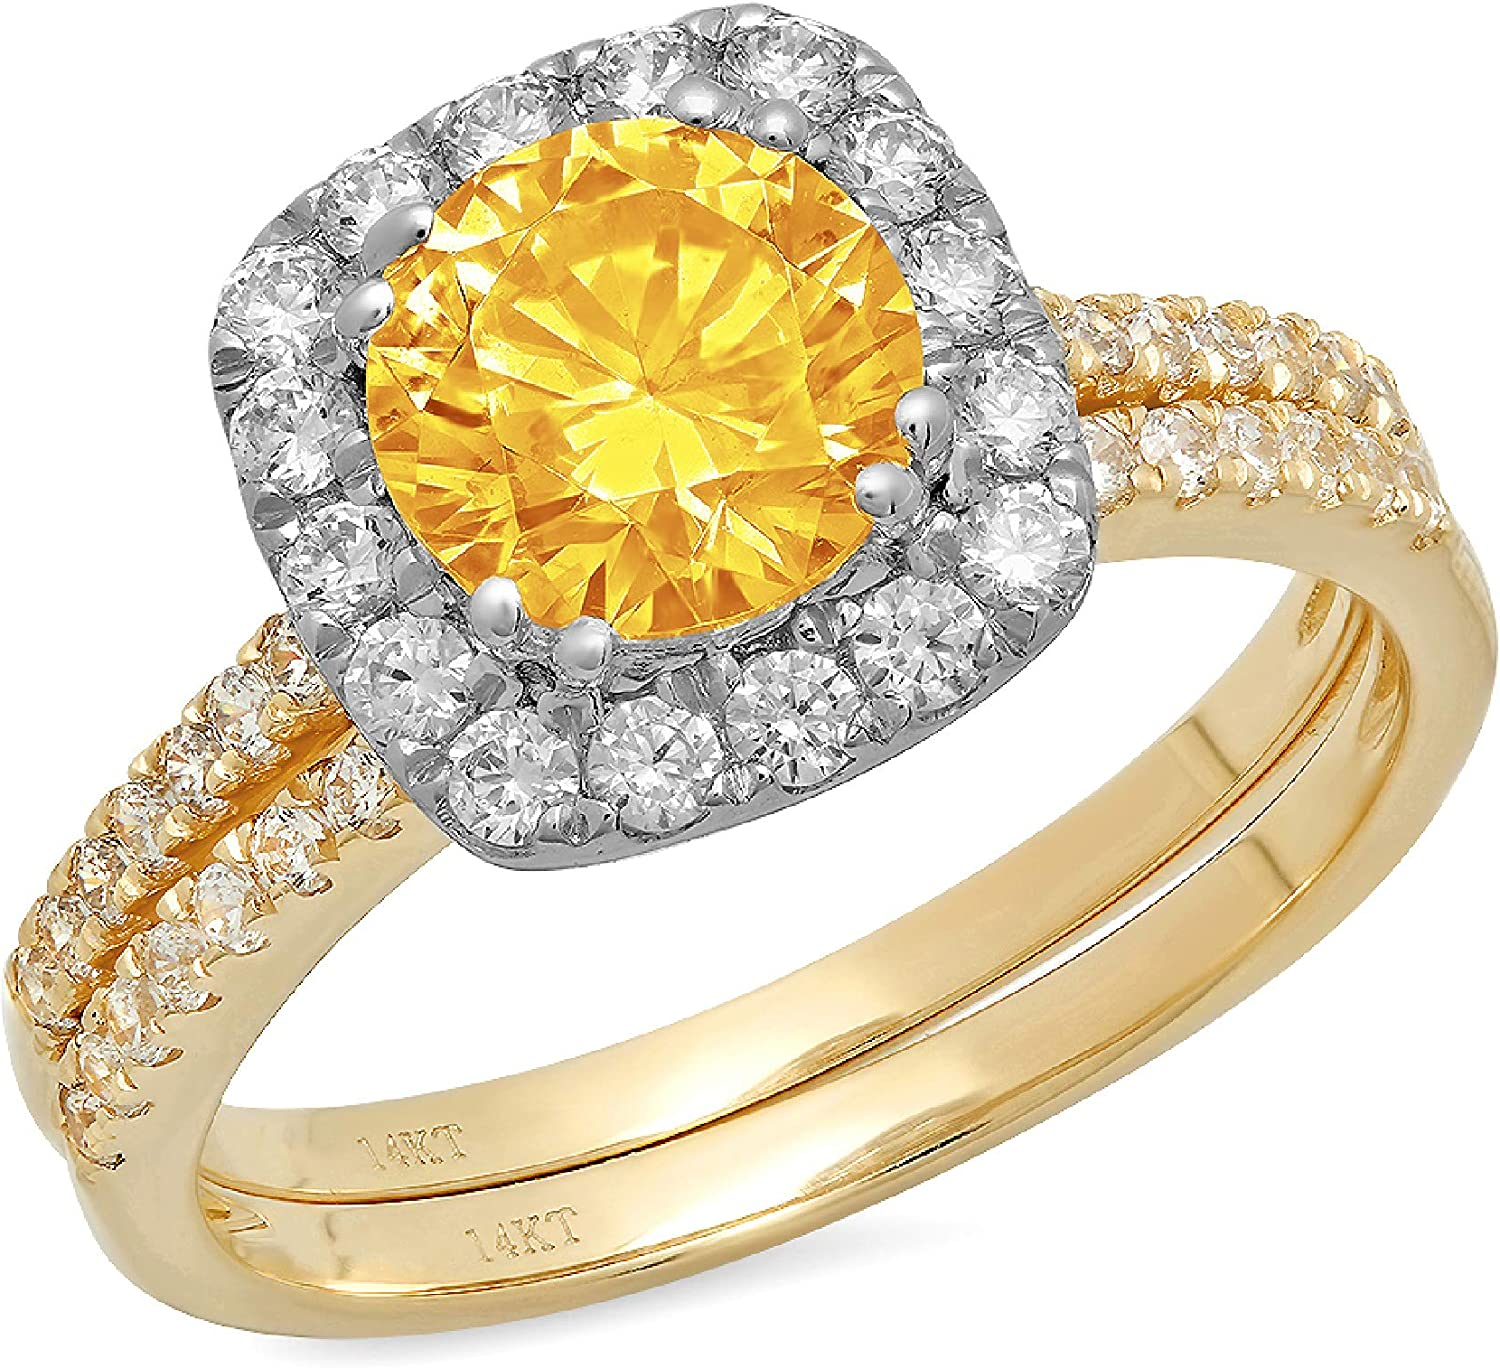 2.19ct Round Cut Halo Pave Solitaire Halo with Accent VVS1 Ideal Natural Yellow Citrine Engagement Promise Designer Anniversary Wedding Bridal Ring band set 14k Yellow White Gold